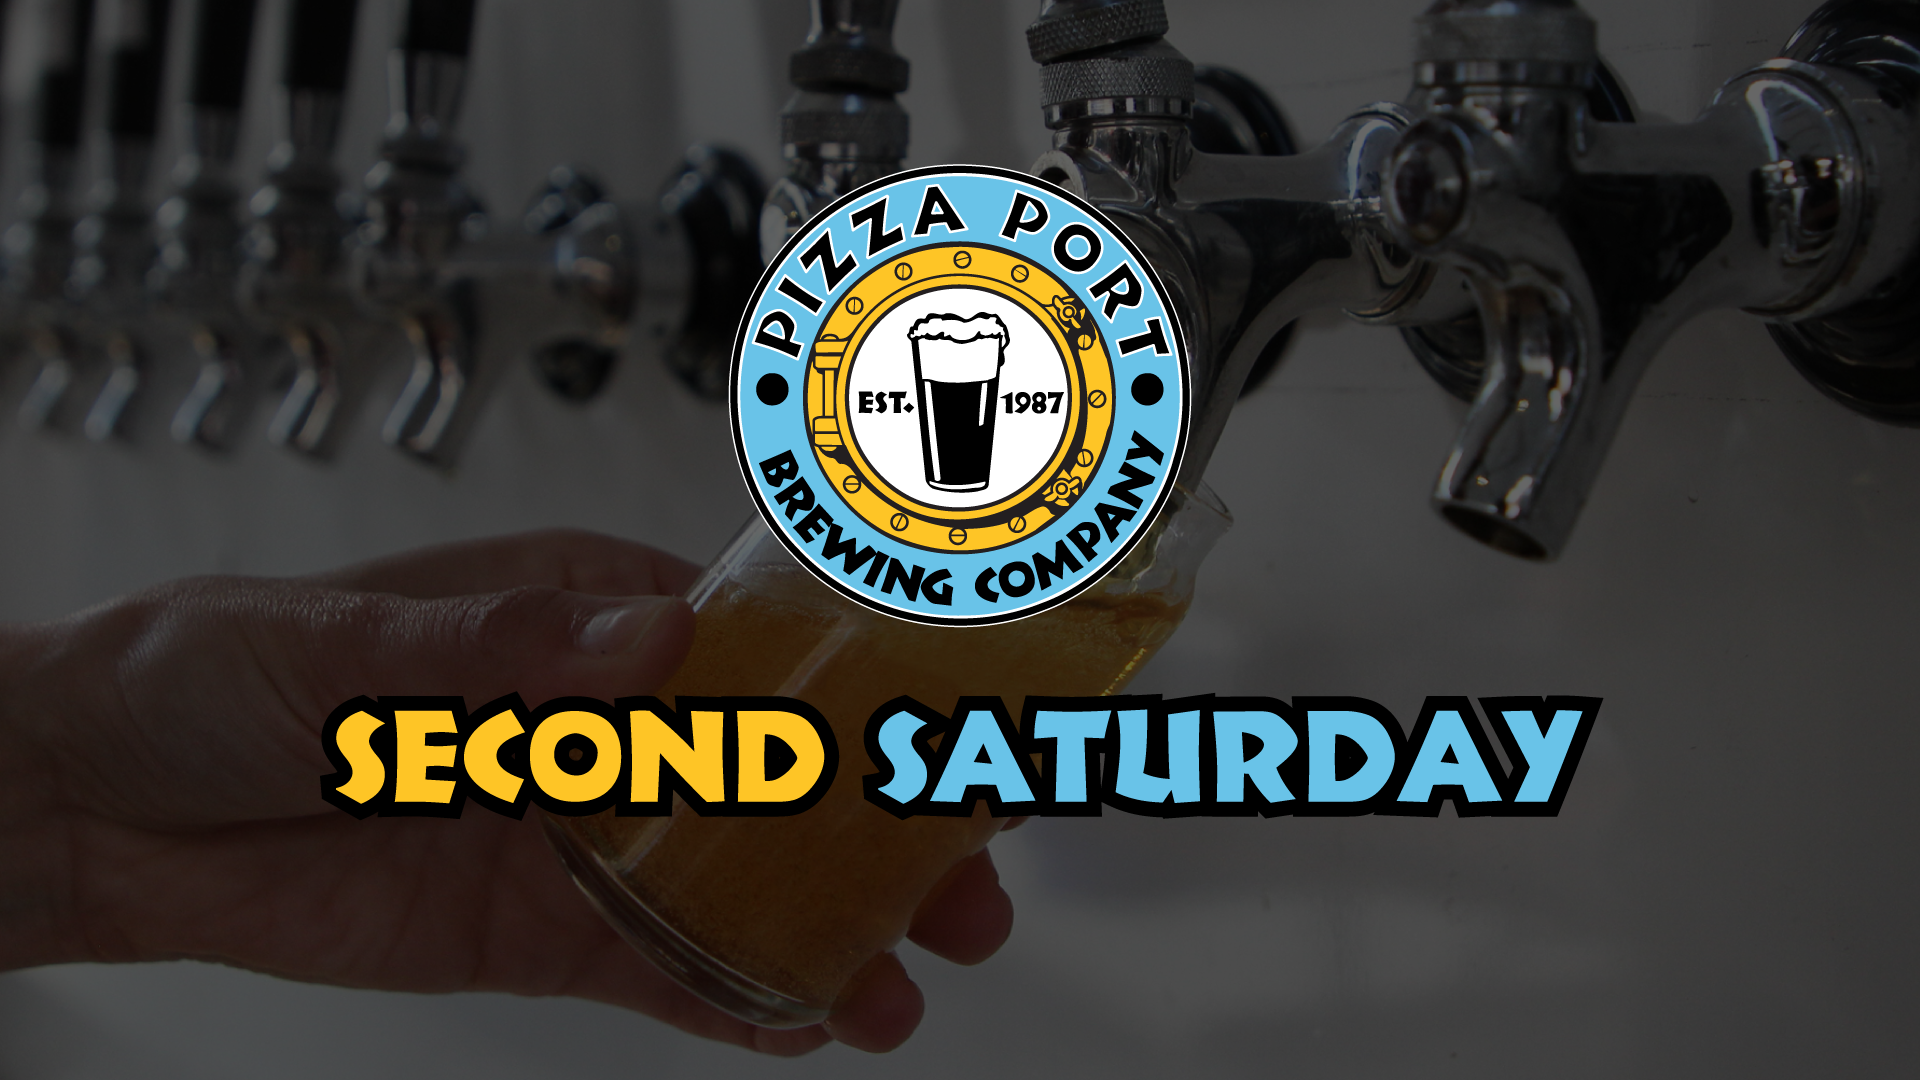 Second Saturday with Pizza Port Brewing